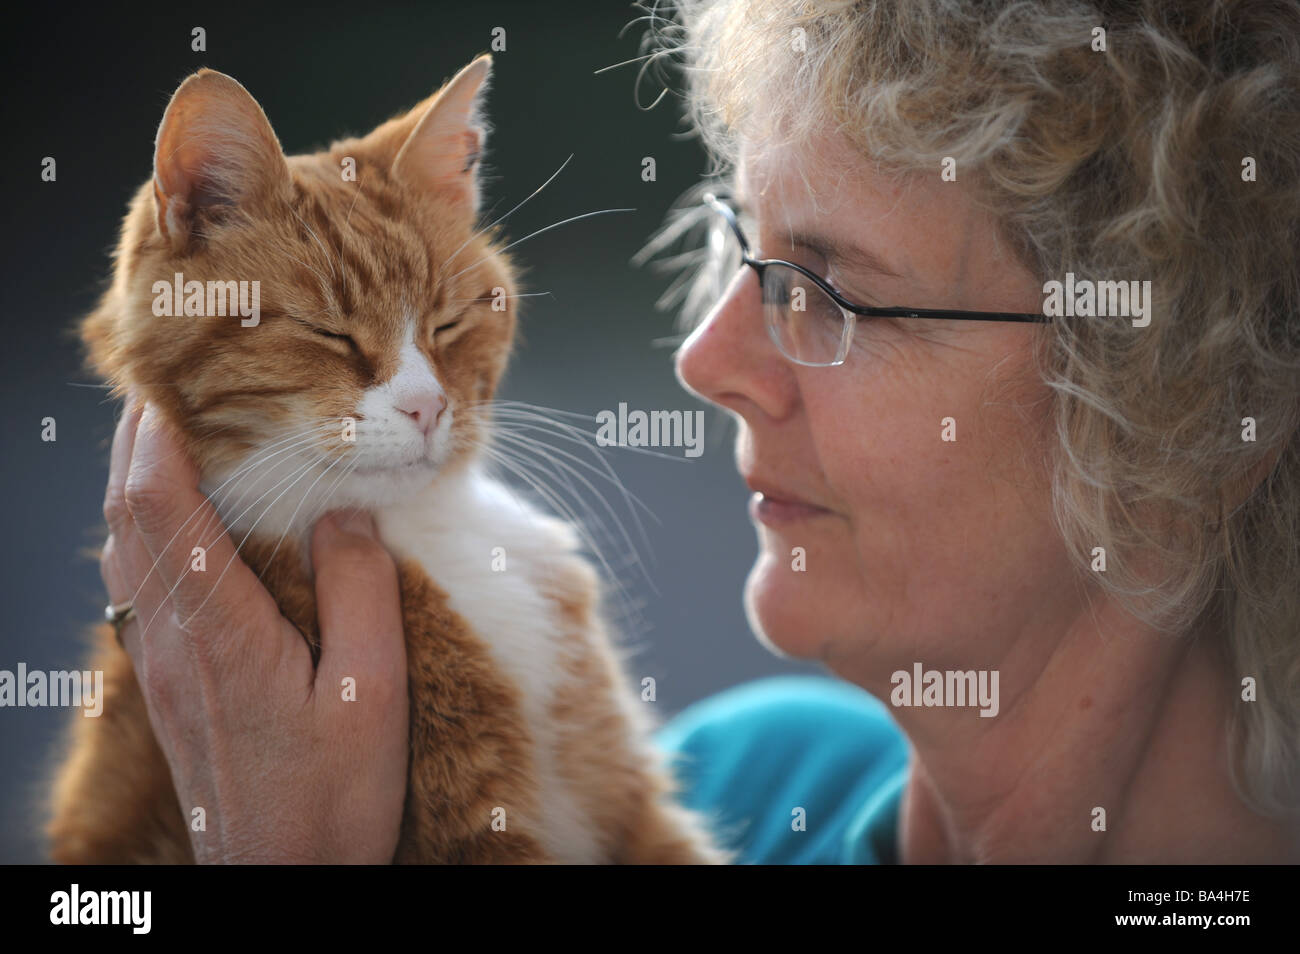 Old Ginger Cat With White Face Markings And A Damaged Ear Being ...